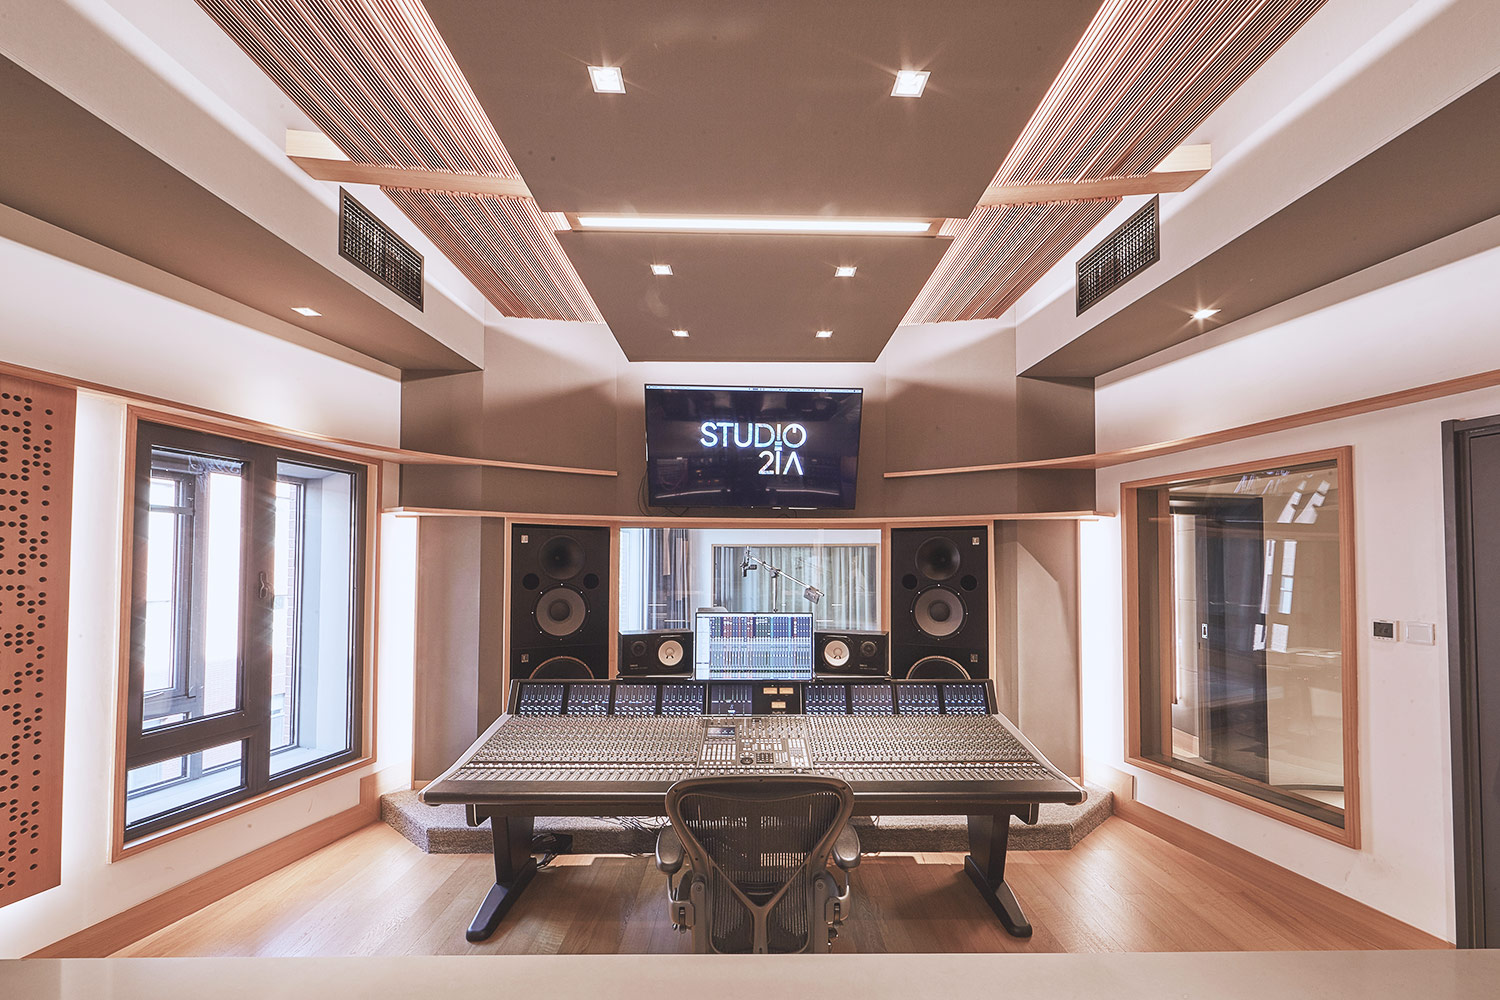 Intrigued by WSDG's reputation in designing the best recording studios in the world, multi-talented recording and mixing engineer TC Zhou started a deep collaboration with our global team for his brand-new Studio 21A facility in Beijing, China. Control Room B.